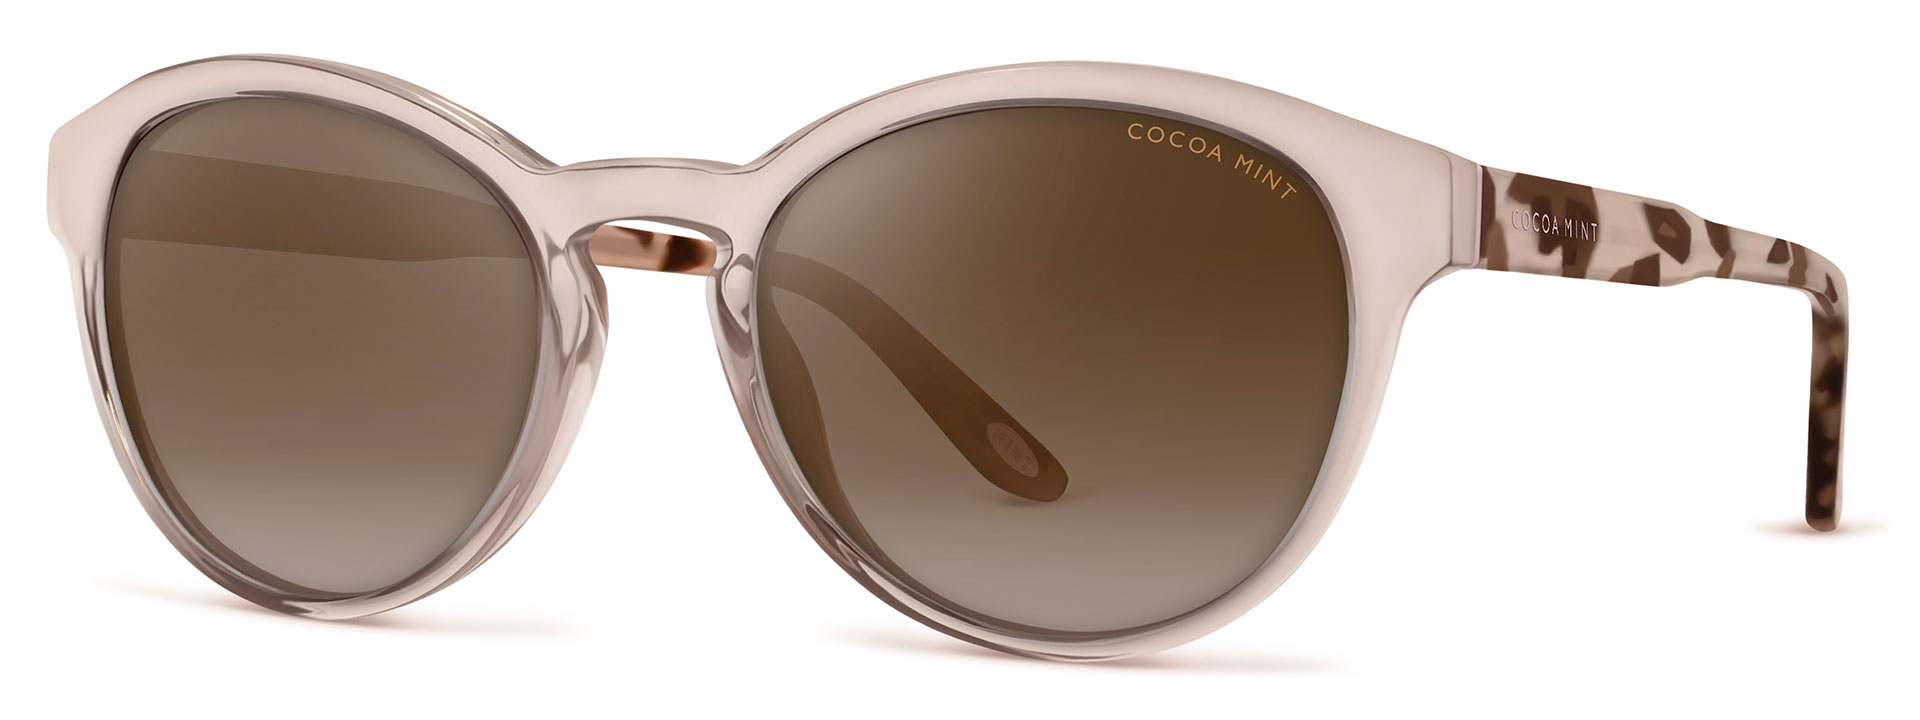 Cocoa Mint Sun Glasses - Blush Crystal - Tortoiseshell - CMS2062-C1